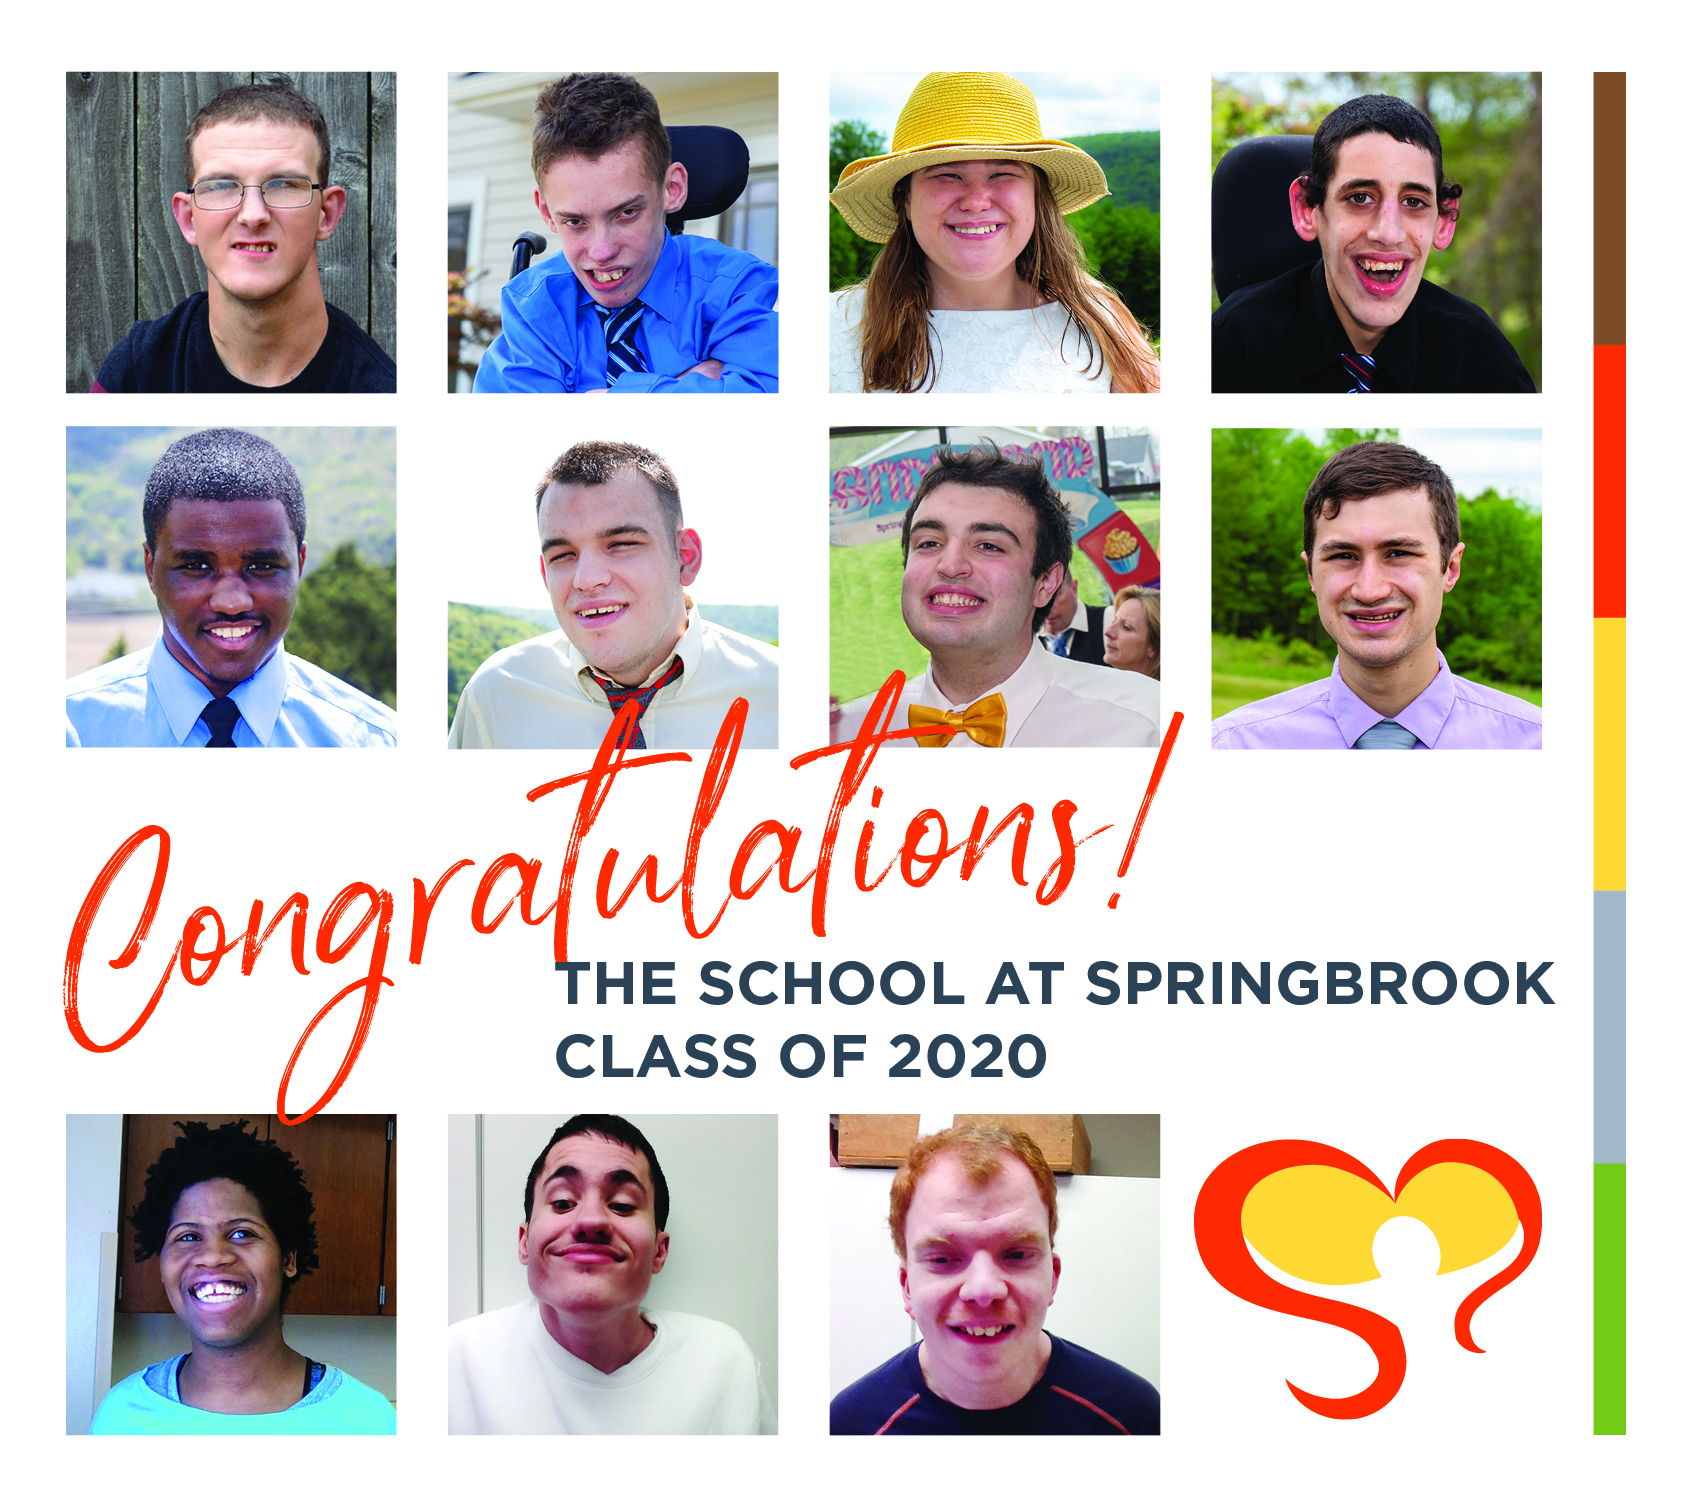 2020 CongratulationsGrads DS Ad - 2020 School at Springbrook Commencement - Take A Look Tuesday